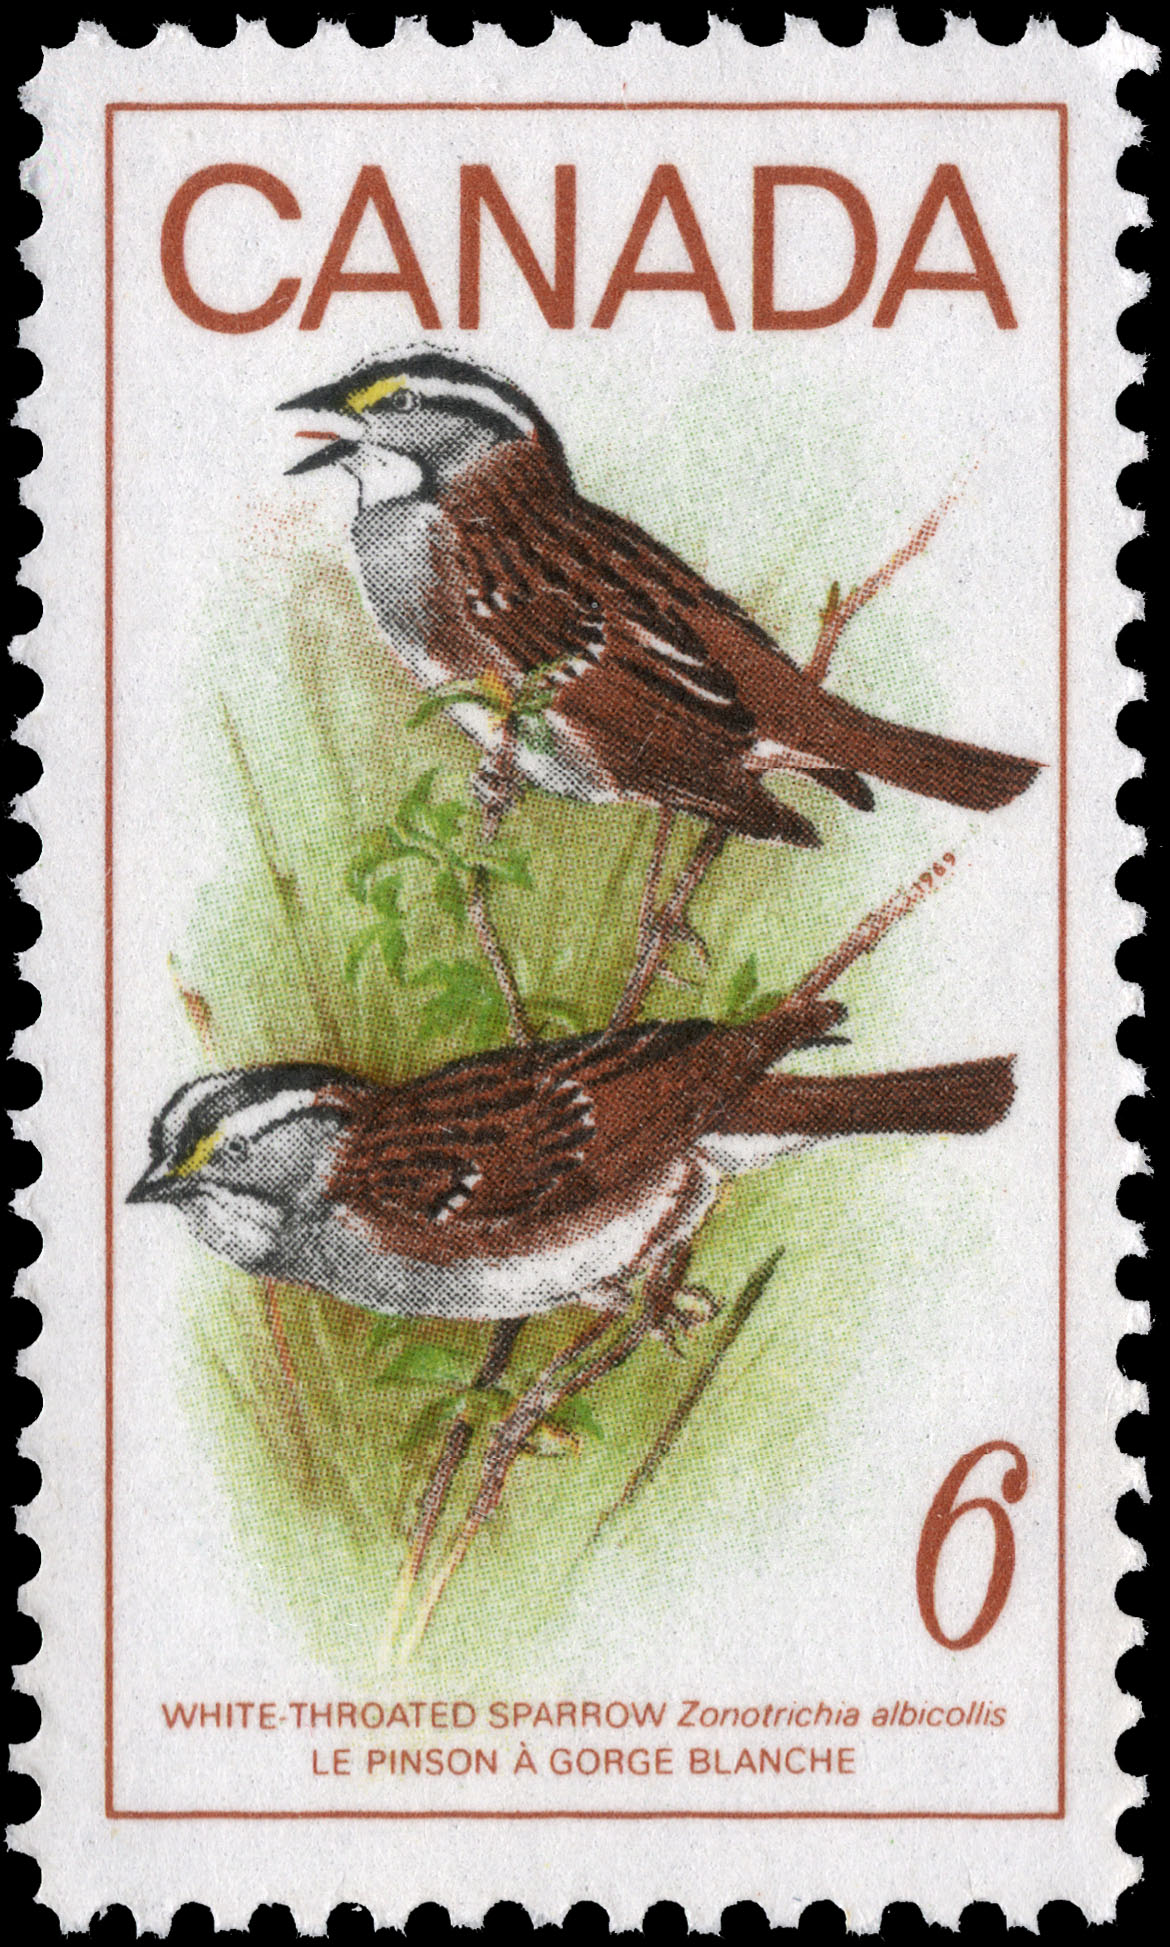 White-throated Sparrow, Zonatrichia albicollis Canada Postage Stamp